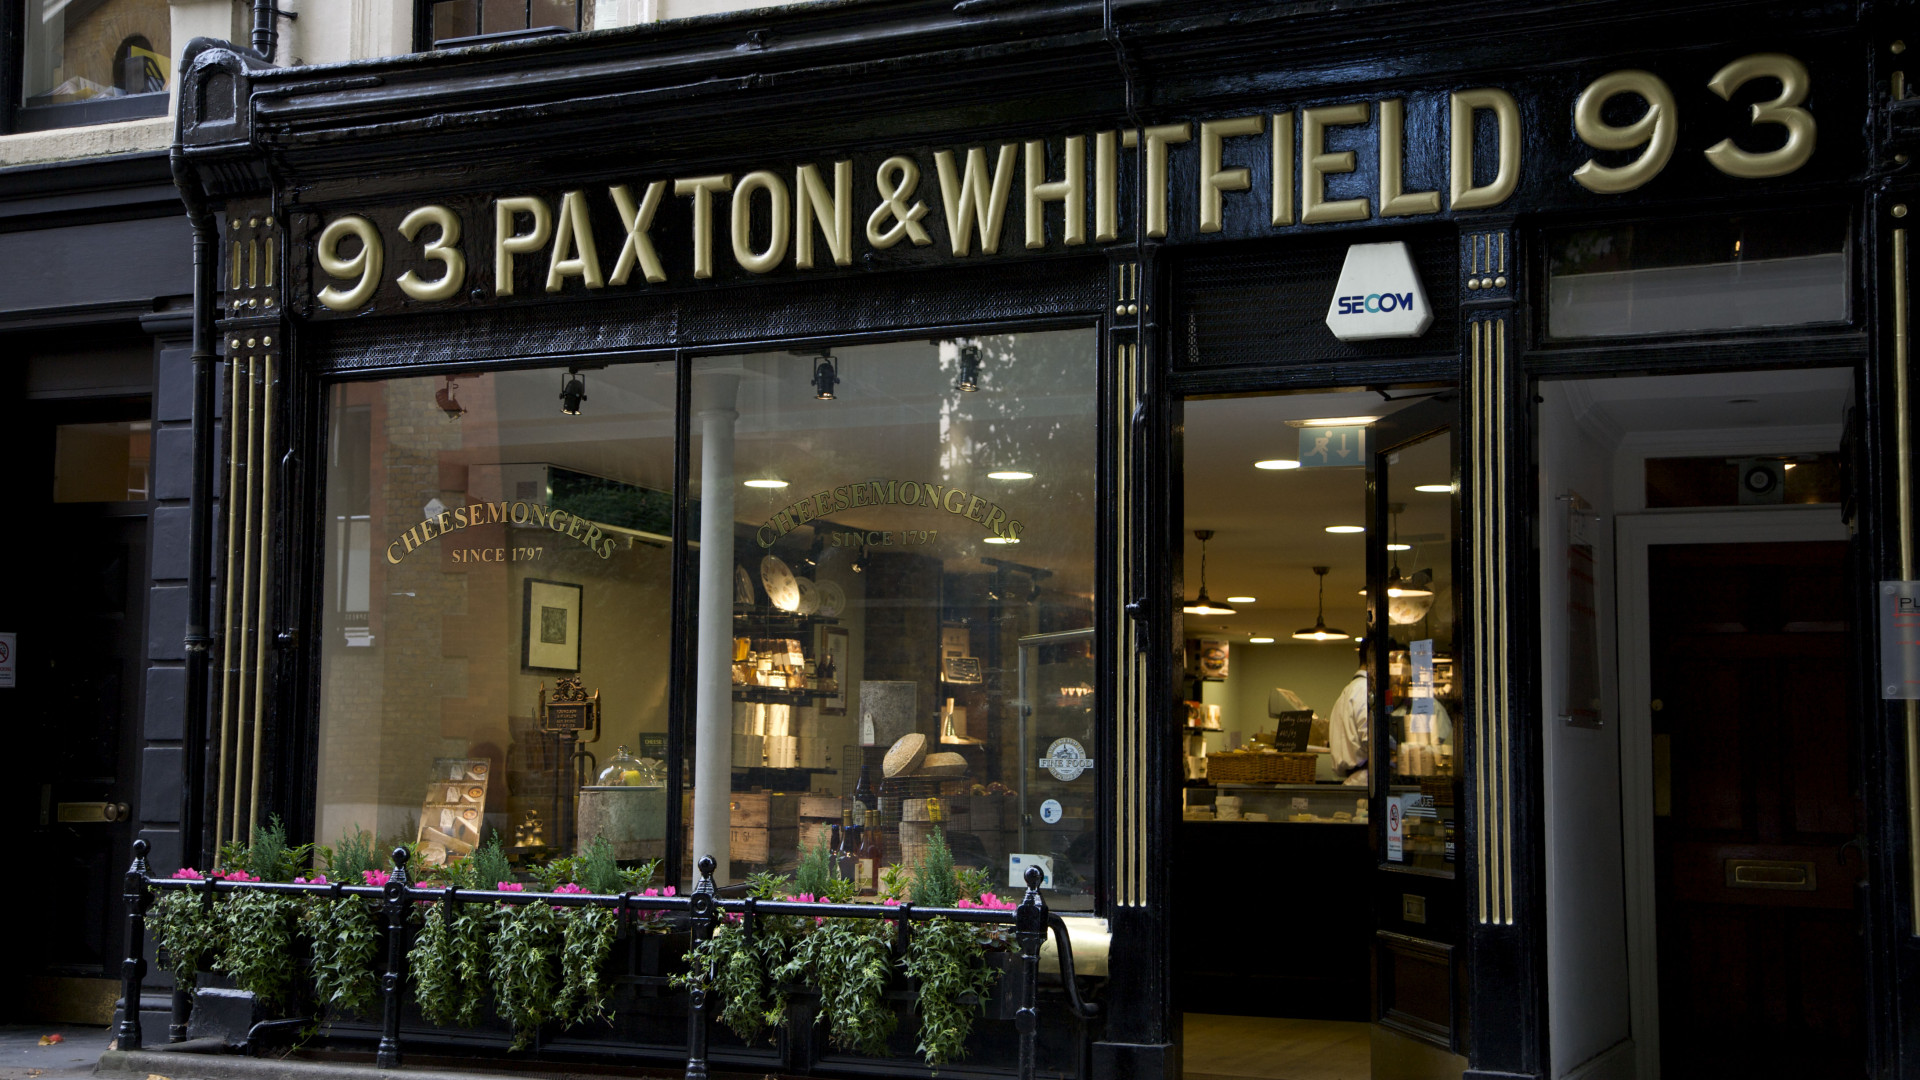 Old school cheese: Paxton & Whitfield